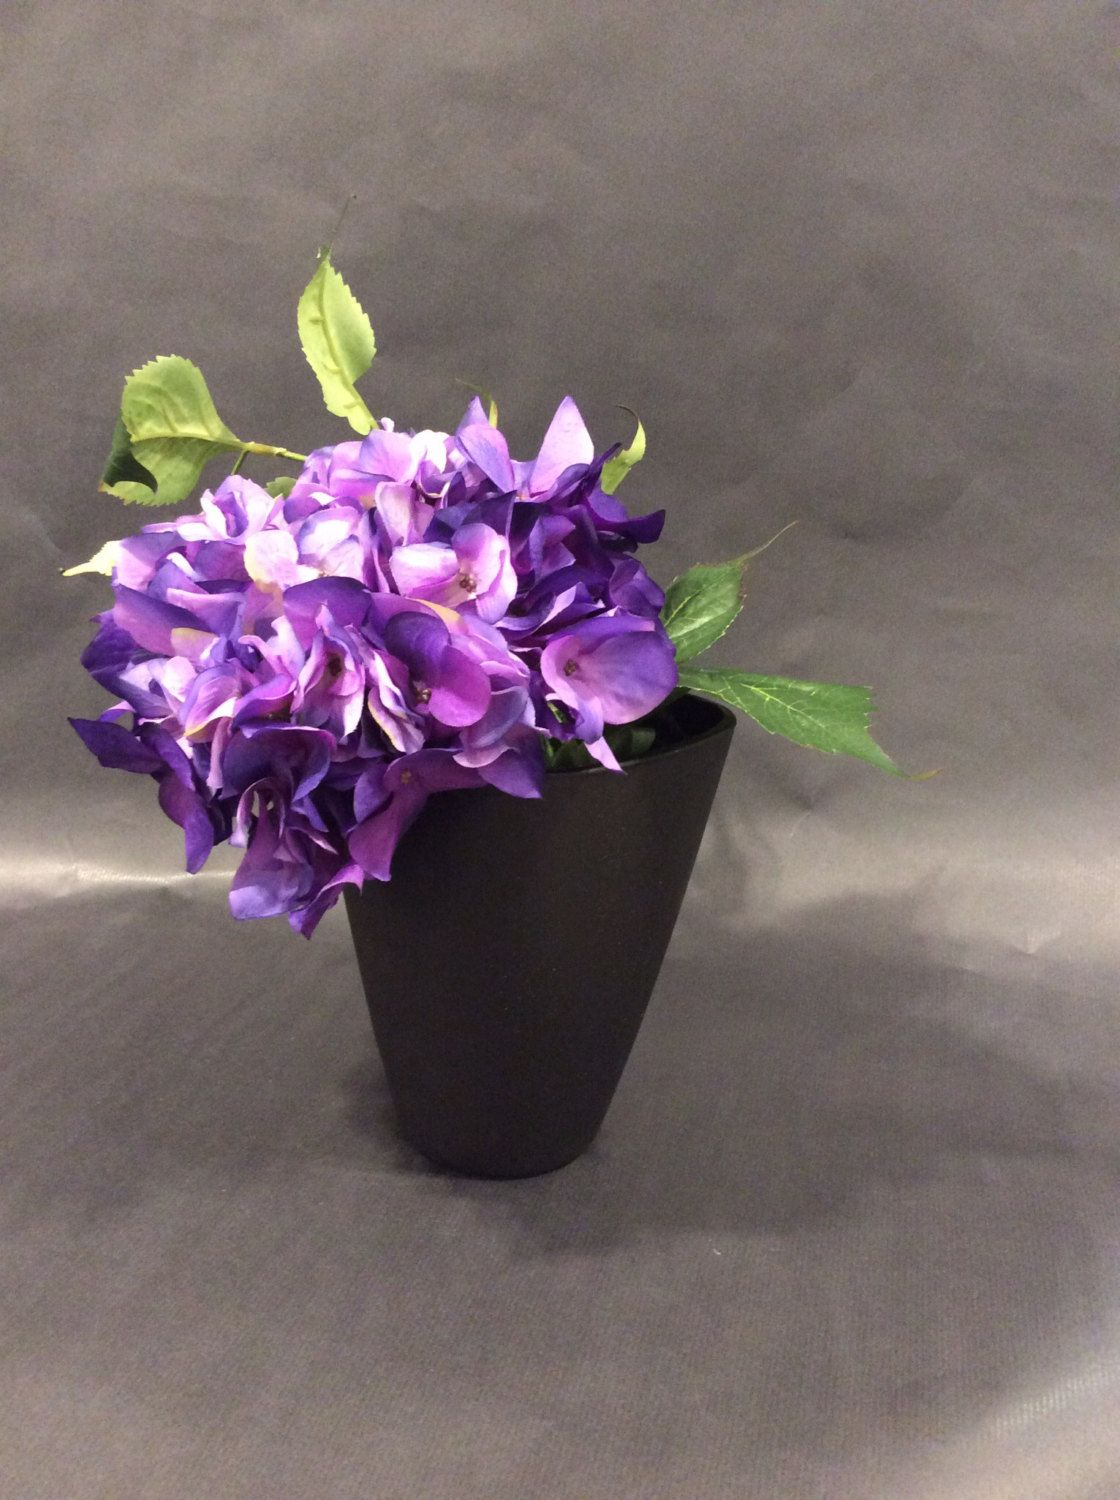 Violet Hydrangea with leaves in a Mat Black Glass container by OliVertByFlorence on Etsy